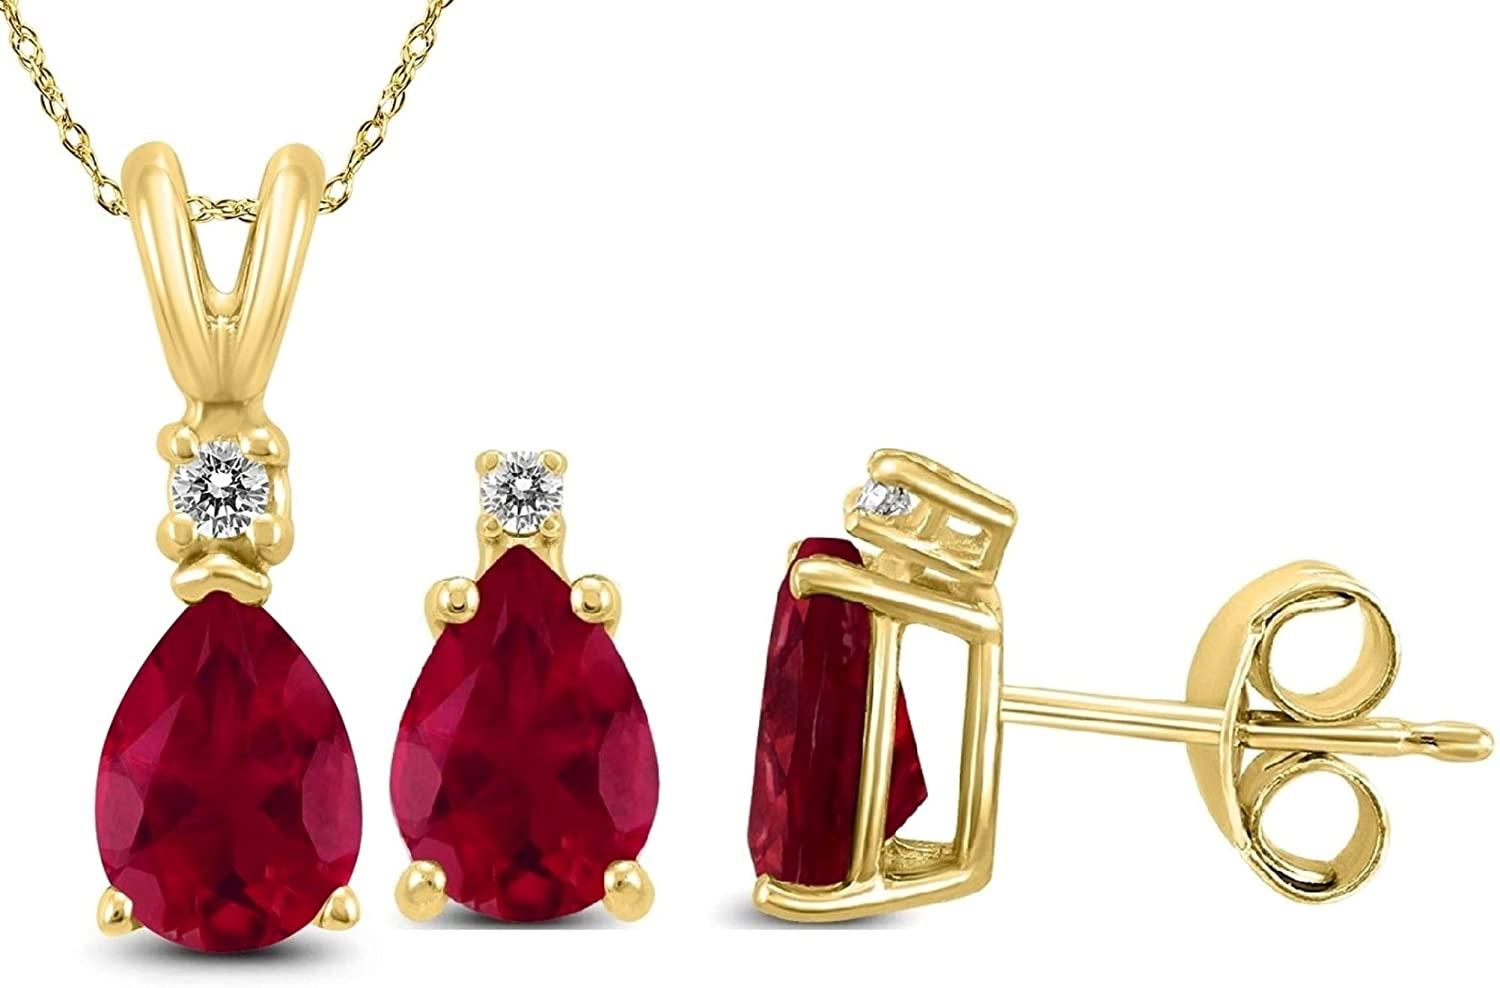 Genuine Luxurious 3 Cttw Ruby & Diamond (G-H, I1-I2) Earrings and Necklace Set in 14K Gold (Yellow-Gold)